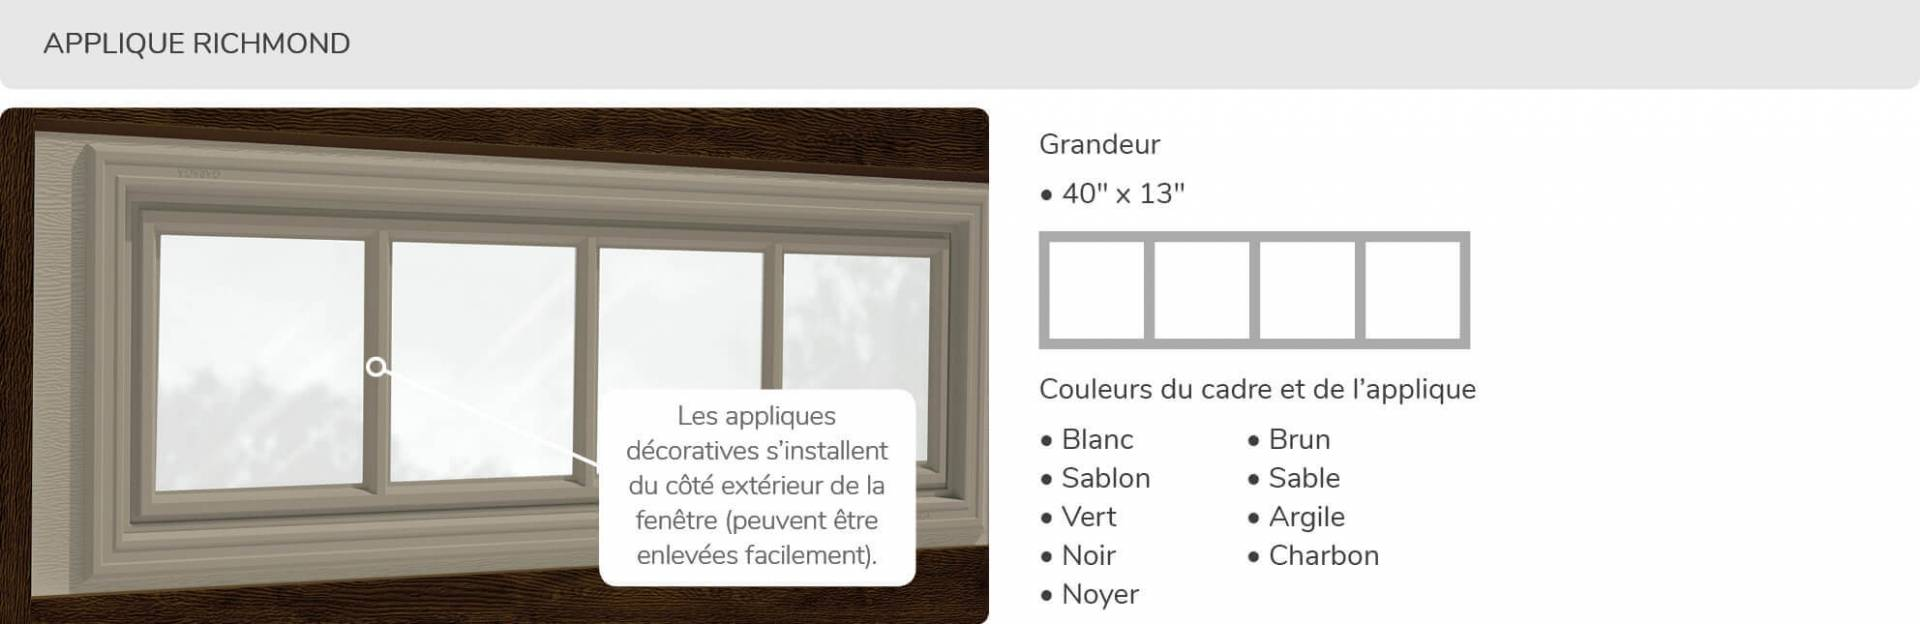 Applique Richmond, 40' x 13', disponible pour la porte R16